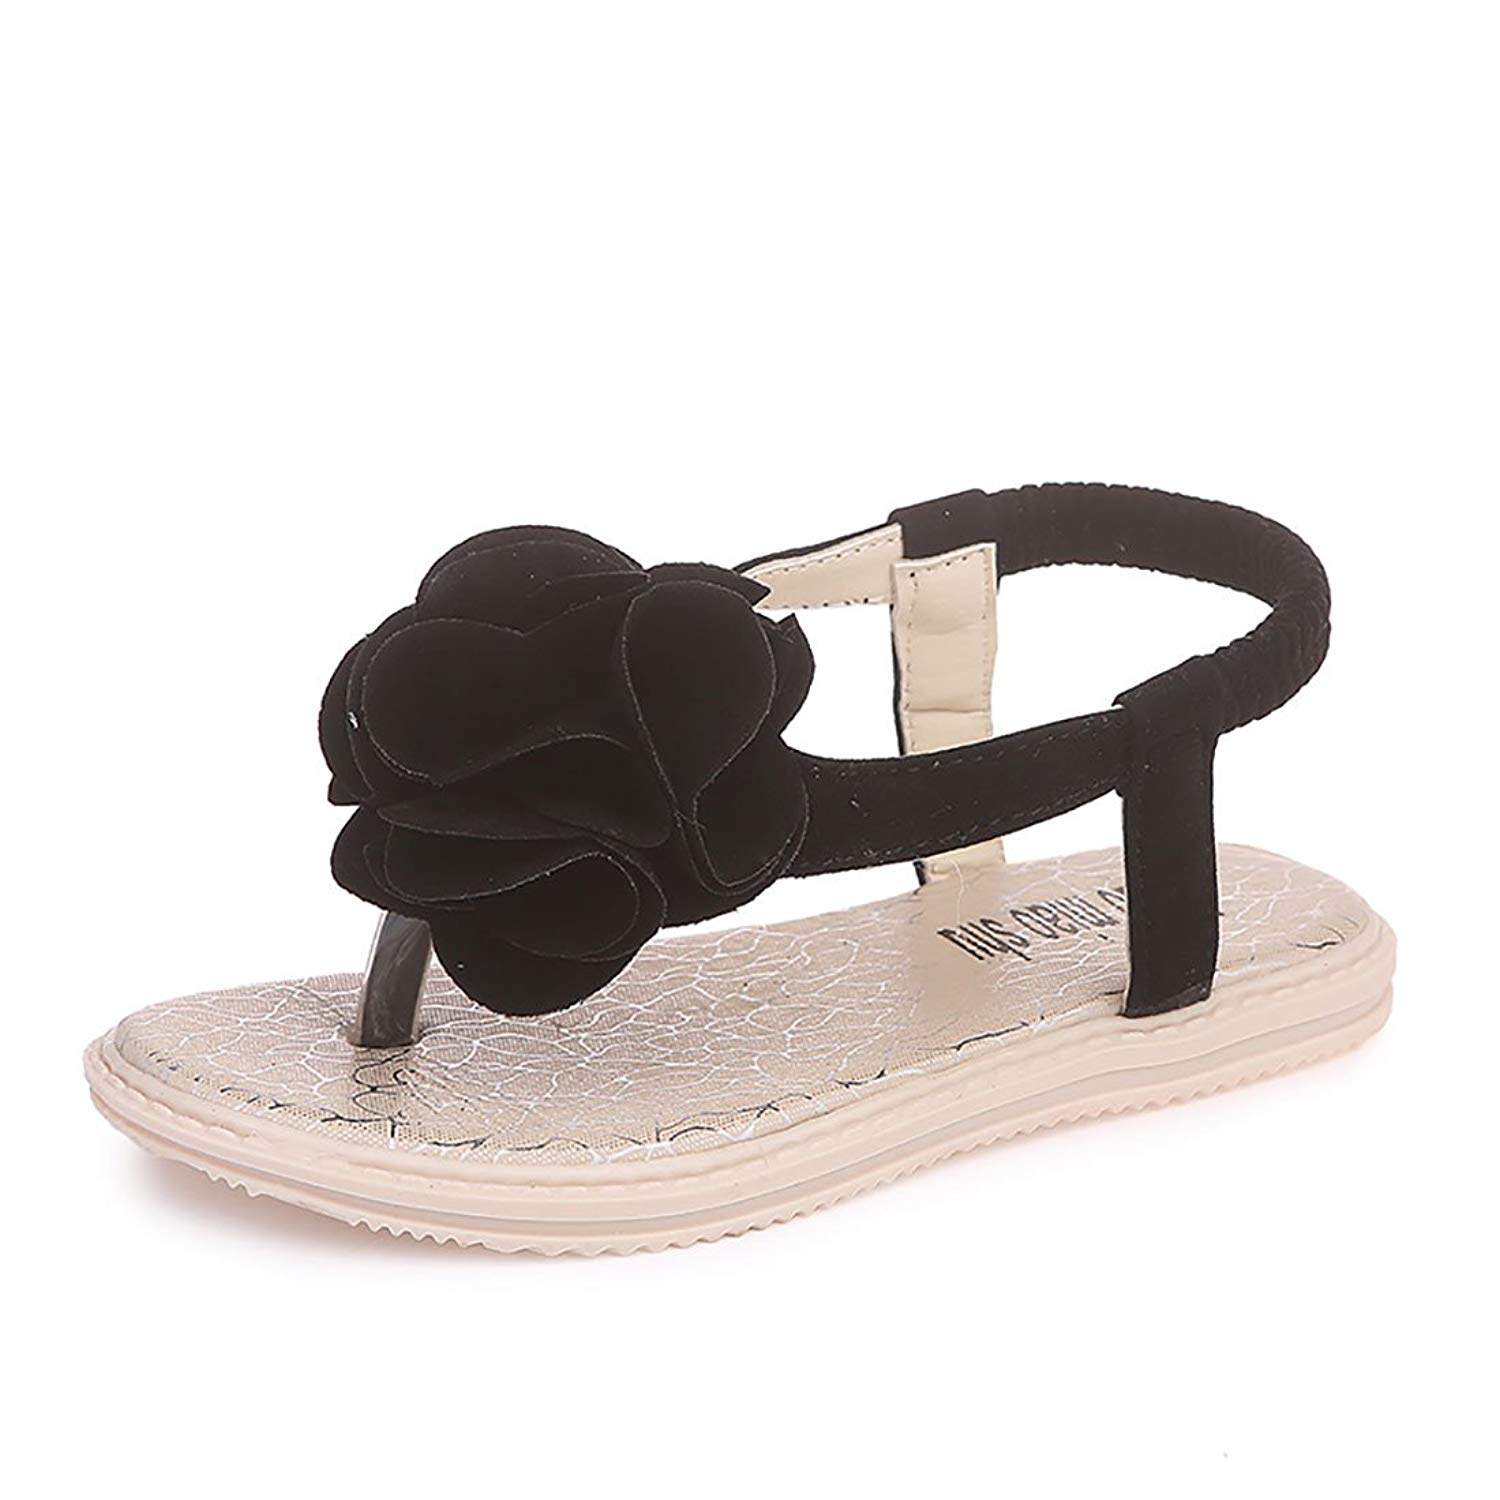 YIBLBOX Kids Toddler Girls Flat Flip Flop Sandals Clip on Beach Shoes with Flower